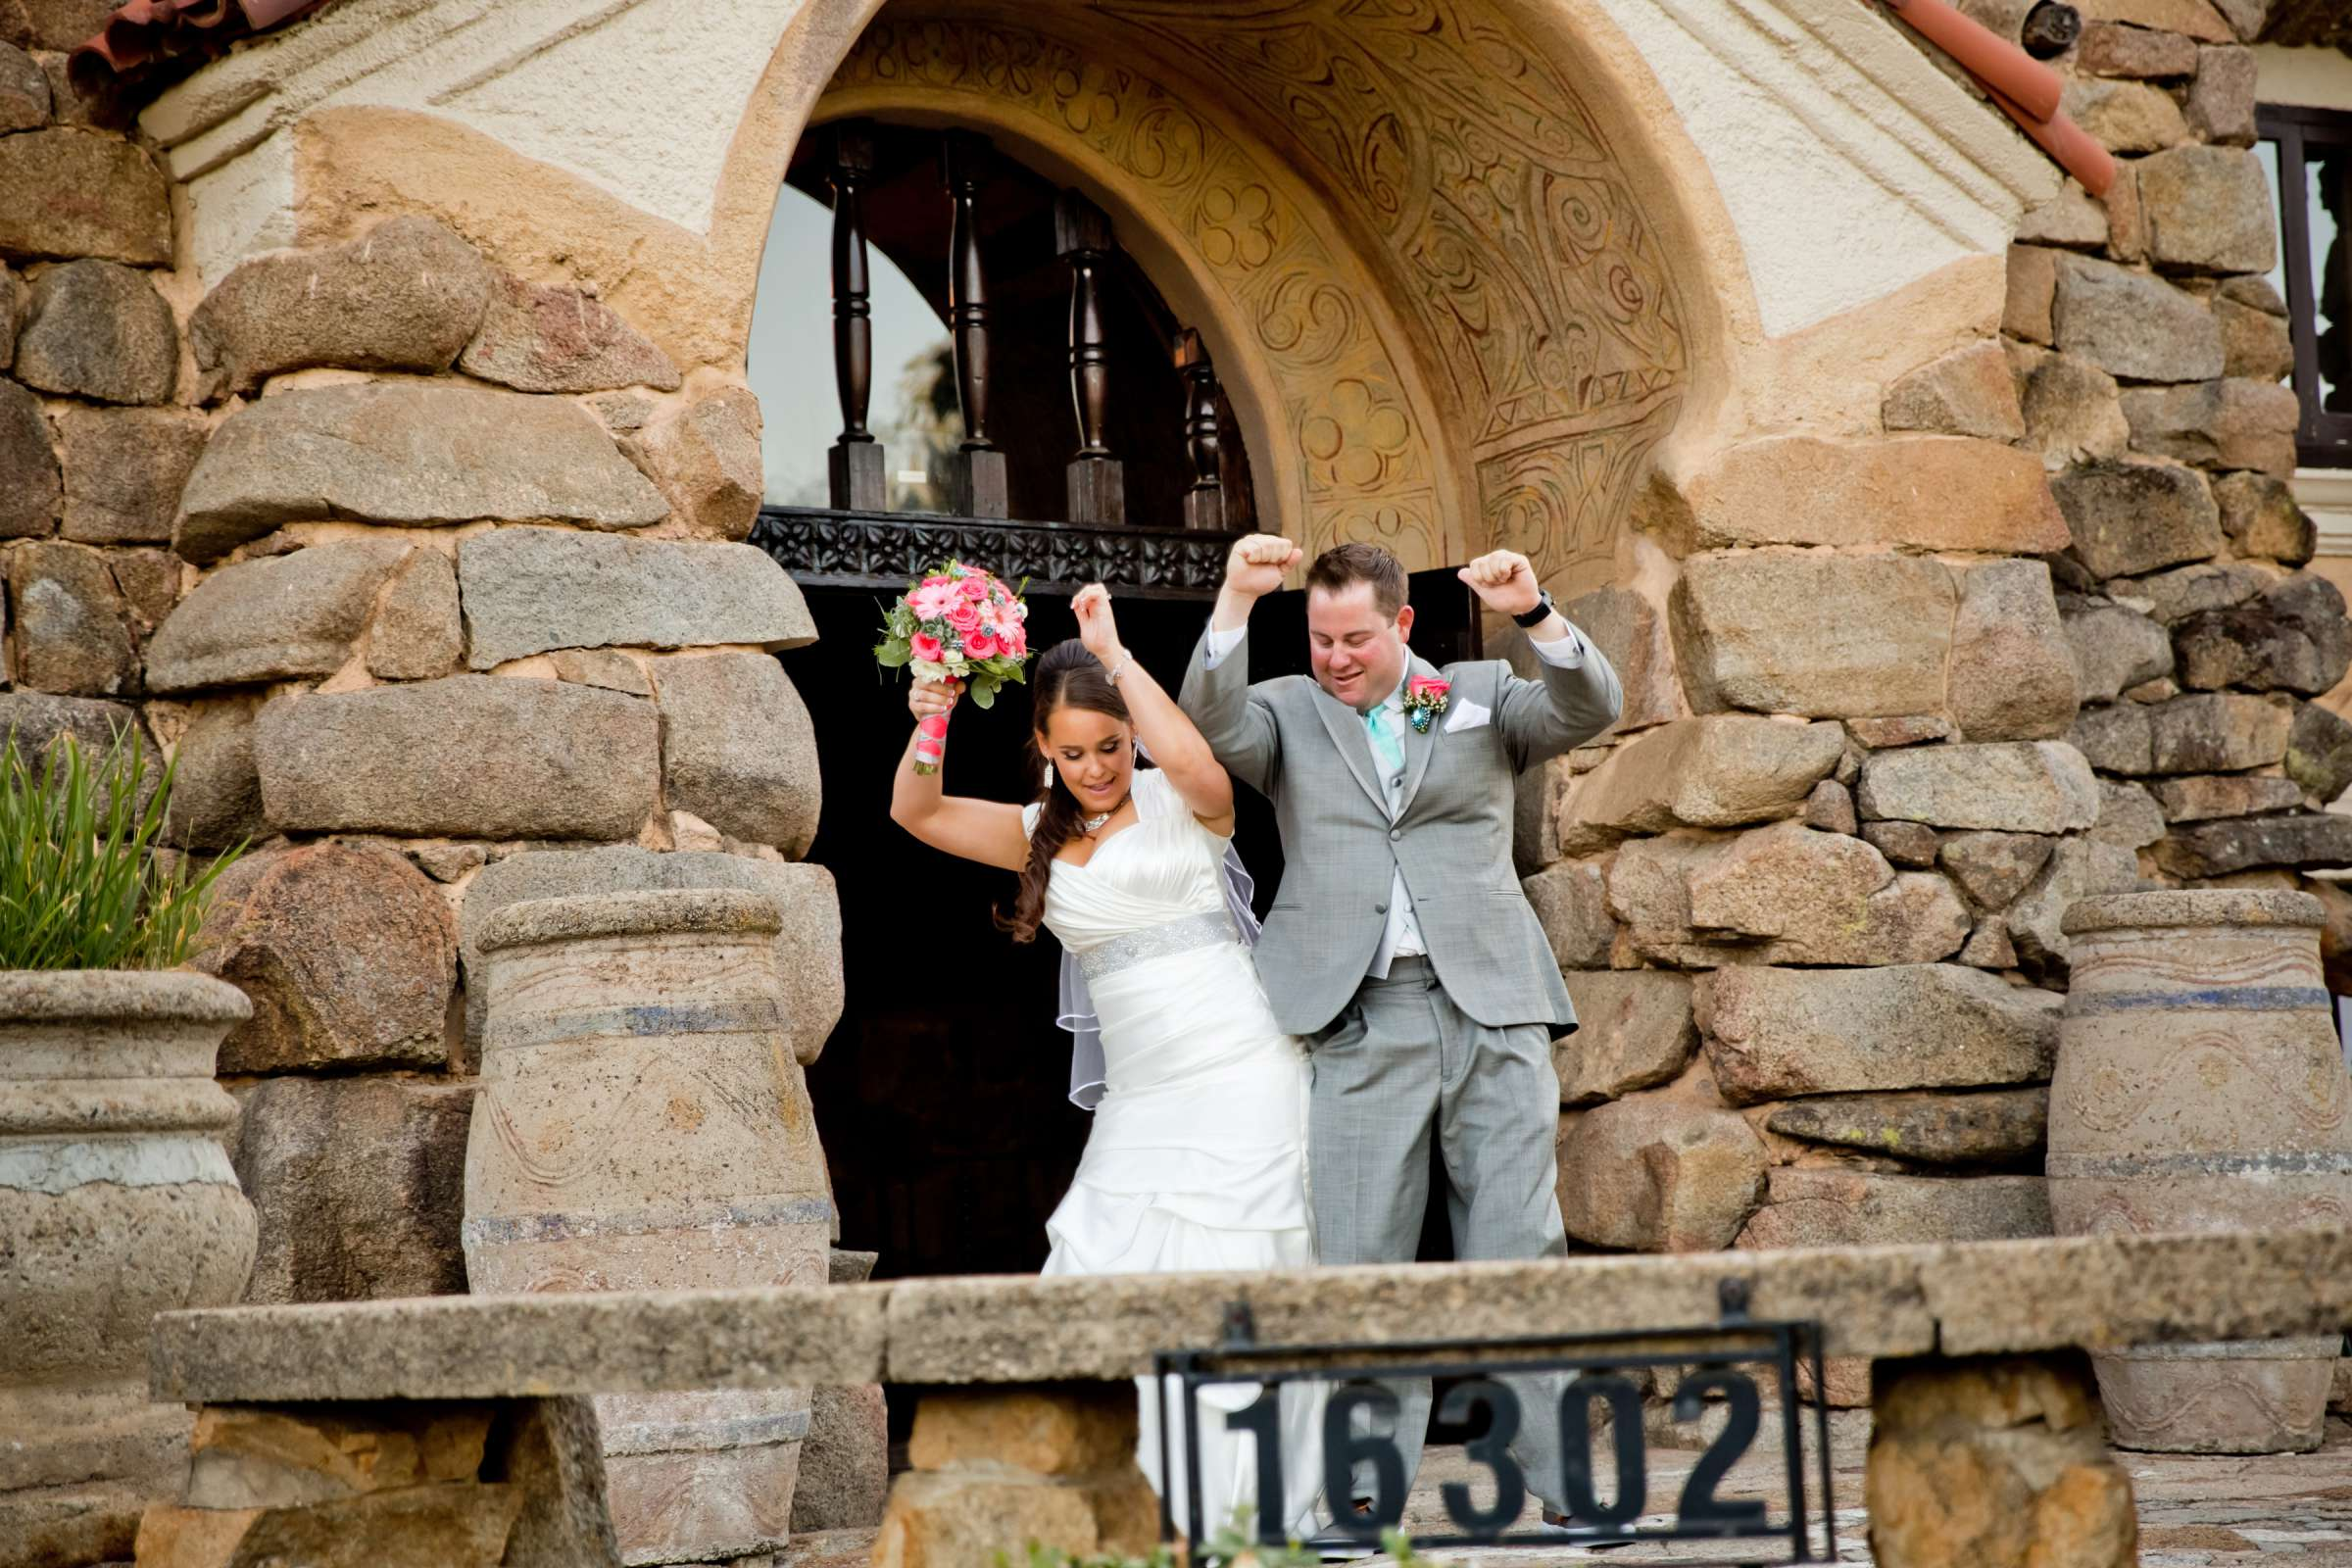 Mt Woodson Castle Wedding, Krista and Donald Wedding Photo #344732 by True Photography